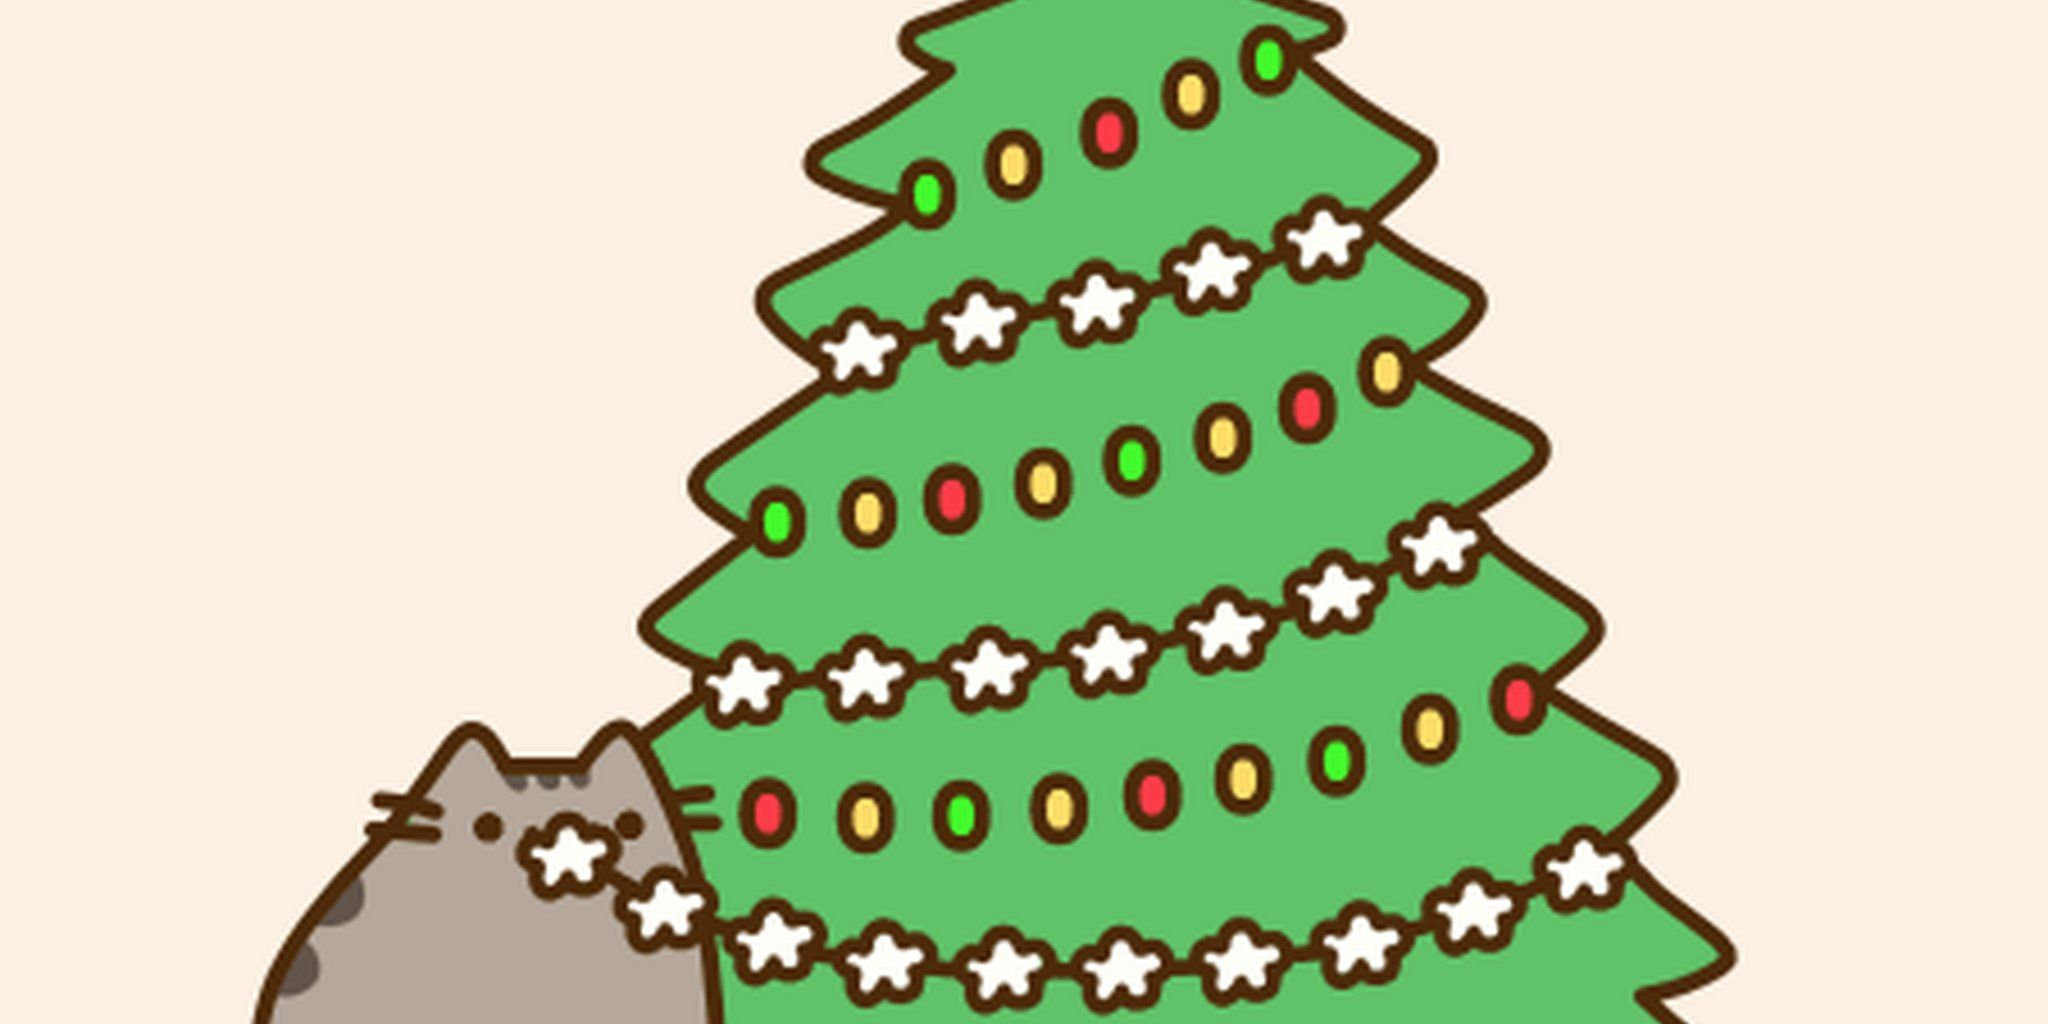 pusheen gif wallpaper for computer www